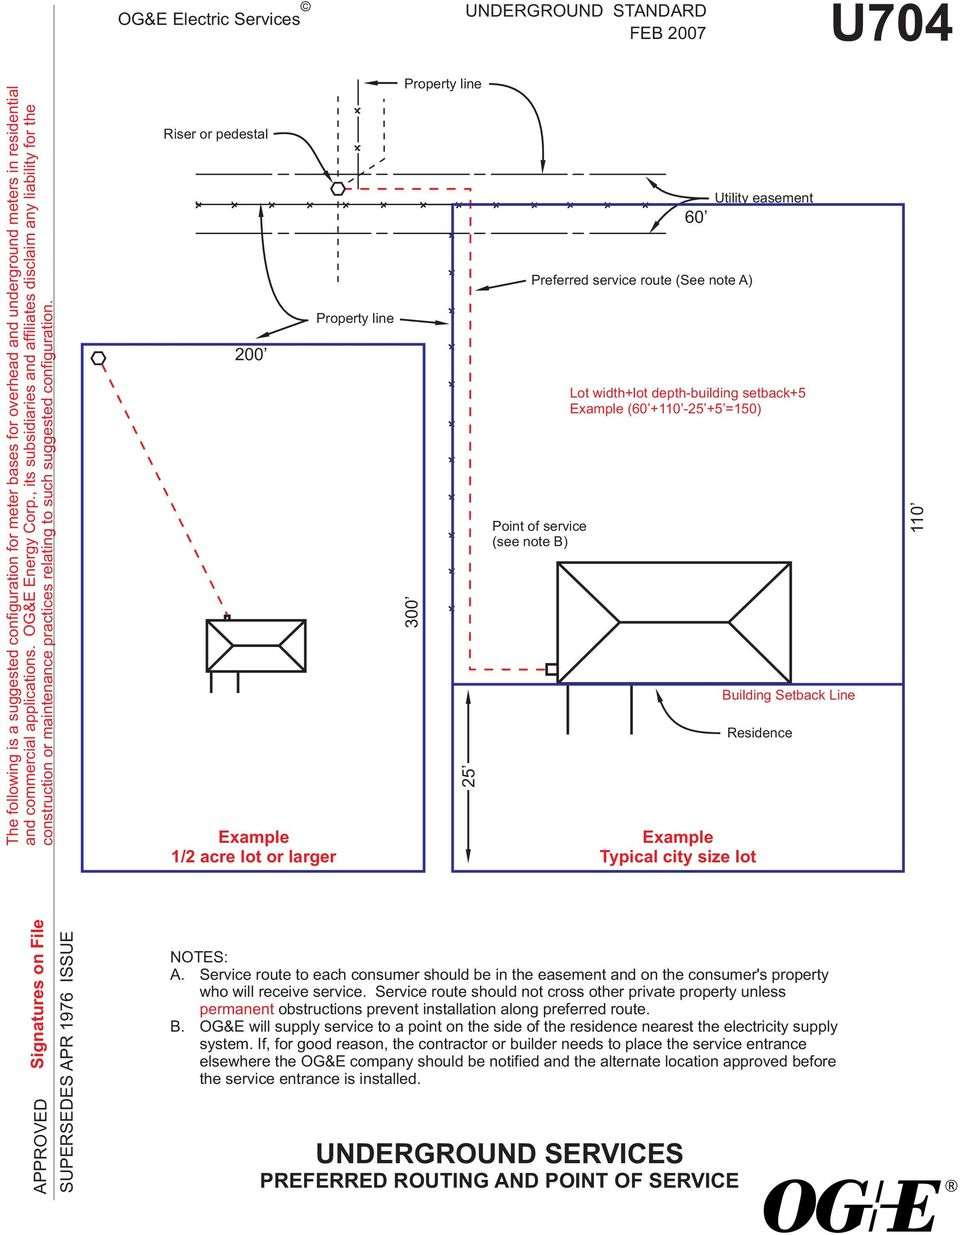 Multiple Meter Installation Amperes Per Position Single Phase Self Diagram For Base Wiring With Cts Service Route To Each Consumer Should Be In The Easement And On Consumers Property Who